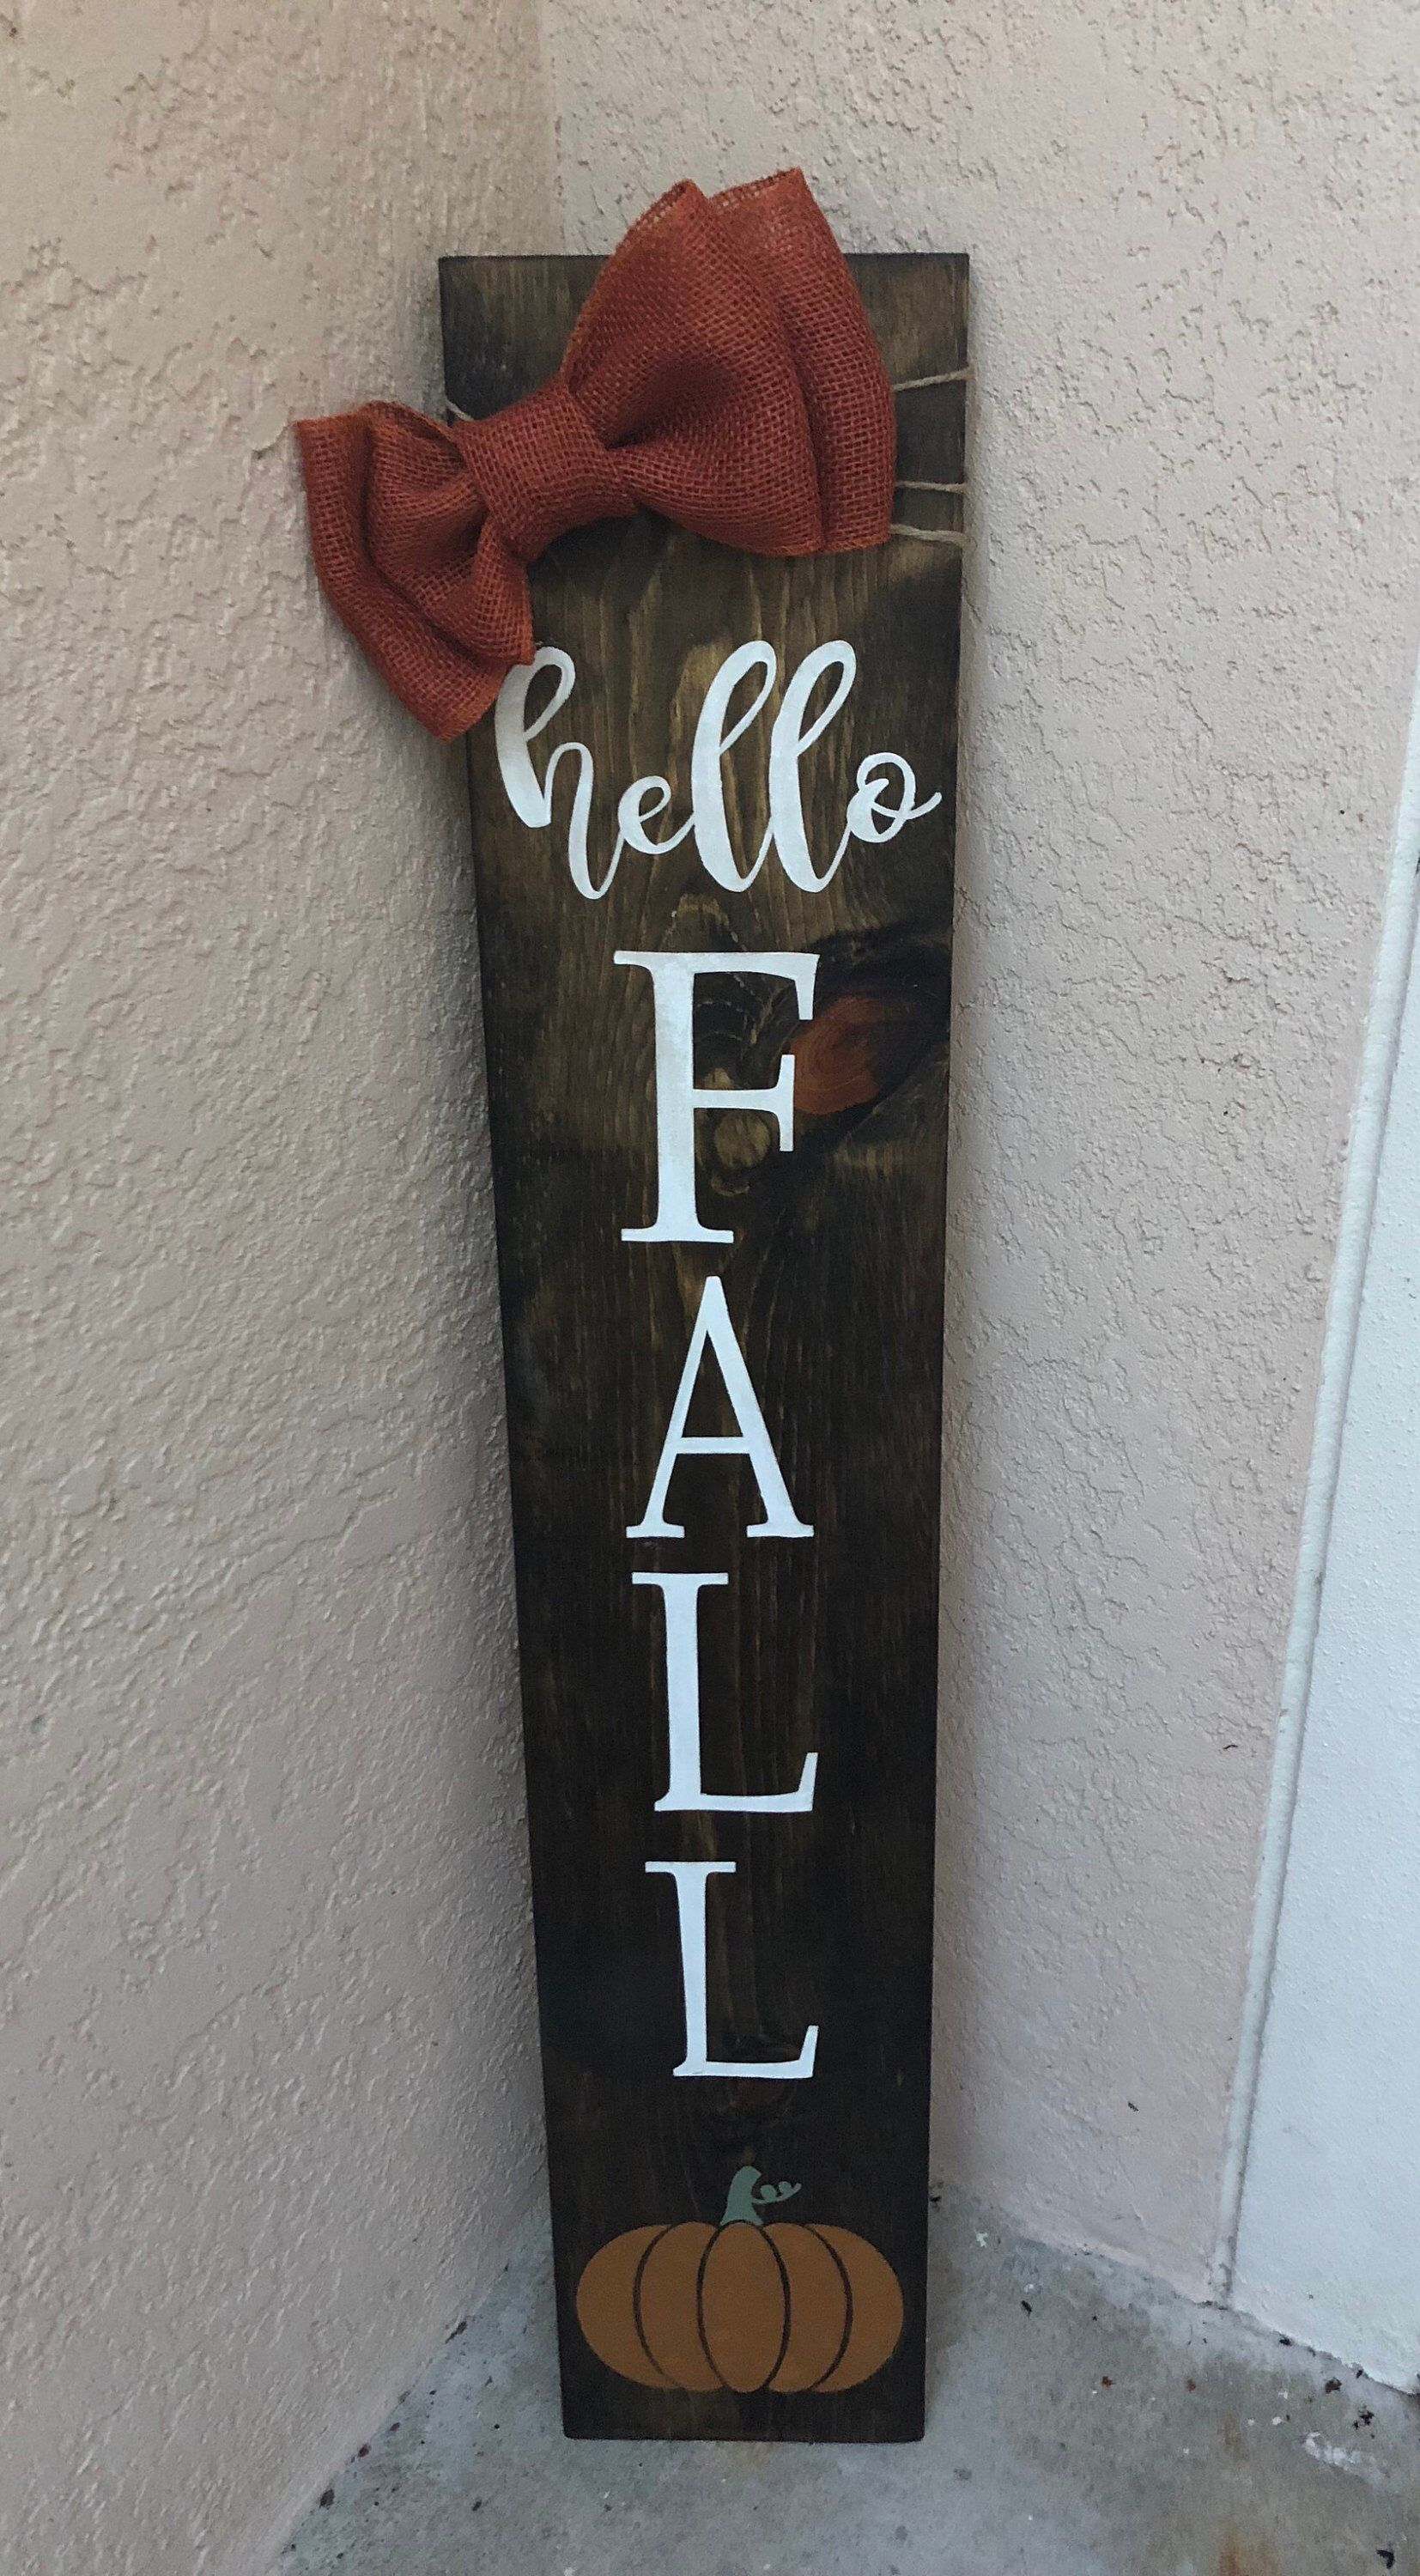 Fall porch decor Fall door decor Fall door signs Front door sign Fall decor Entryway decor Fall porch decorations #falldecor